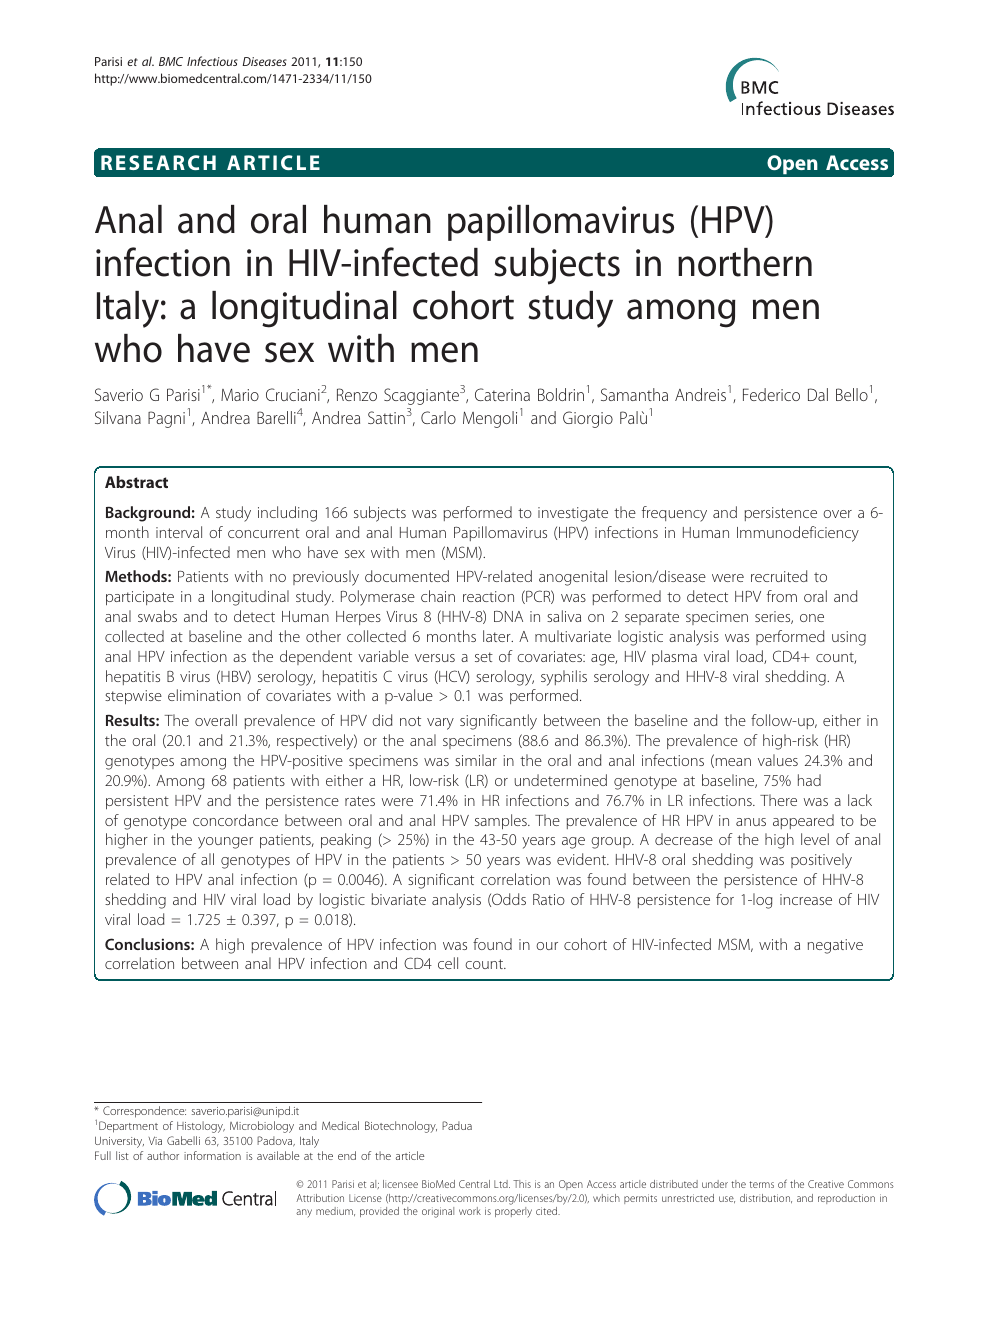 Anal and oral human papillomavirus (HPV) infection in HIV-infected